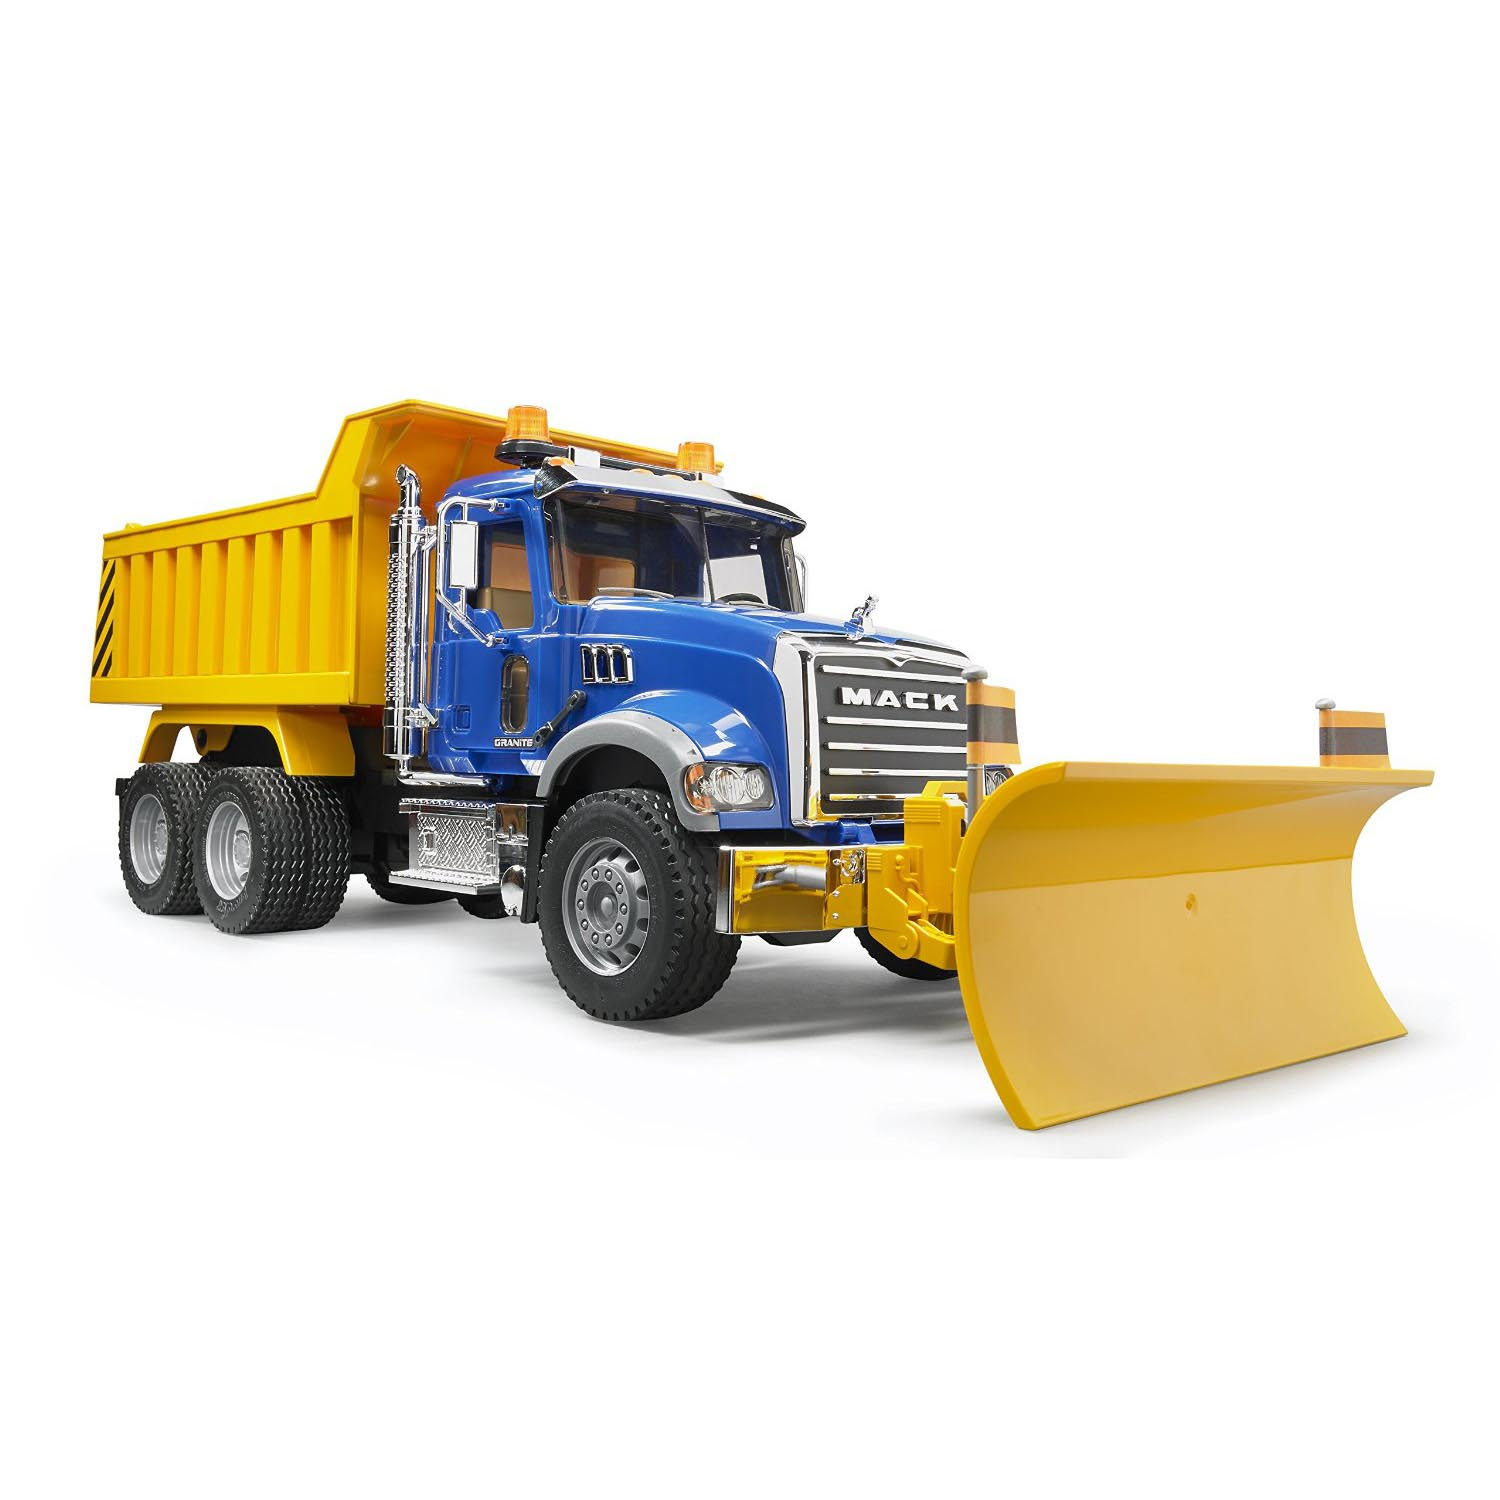 Bruder Toys Mack Granite 1:16 Play Snow Plow Dump Truck with Front Blade | 02825 by Bruder Toys